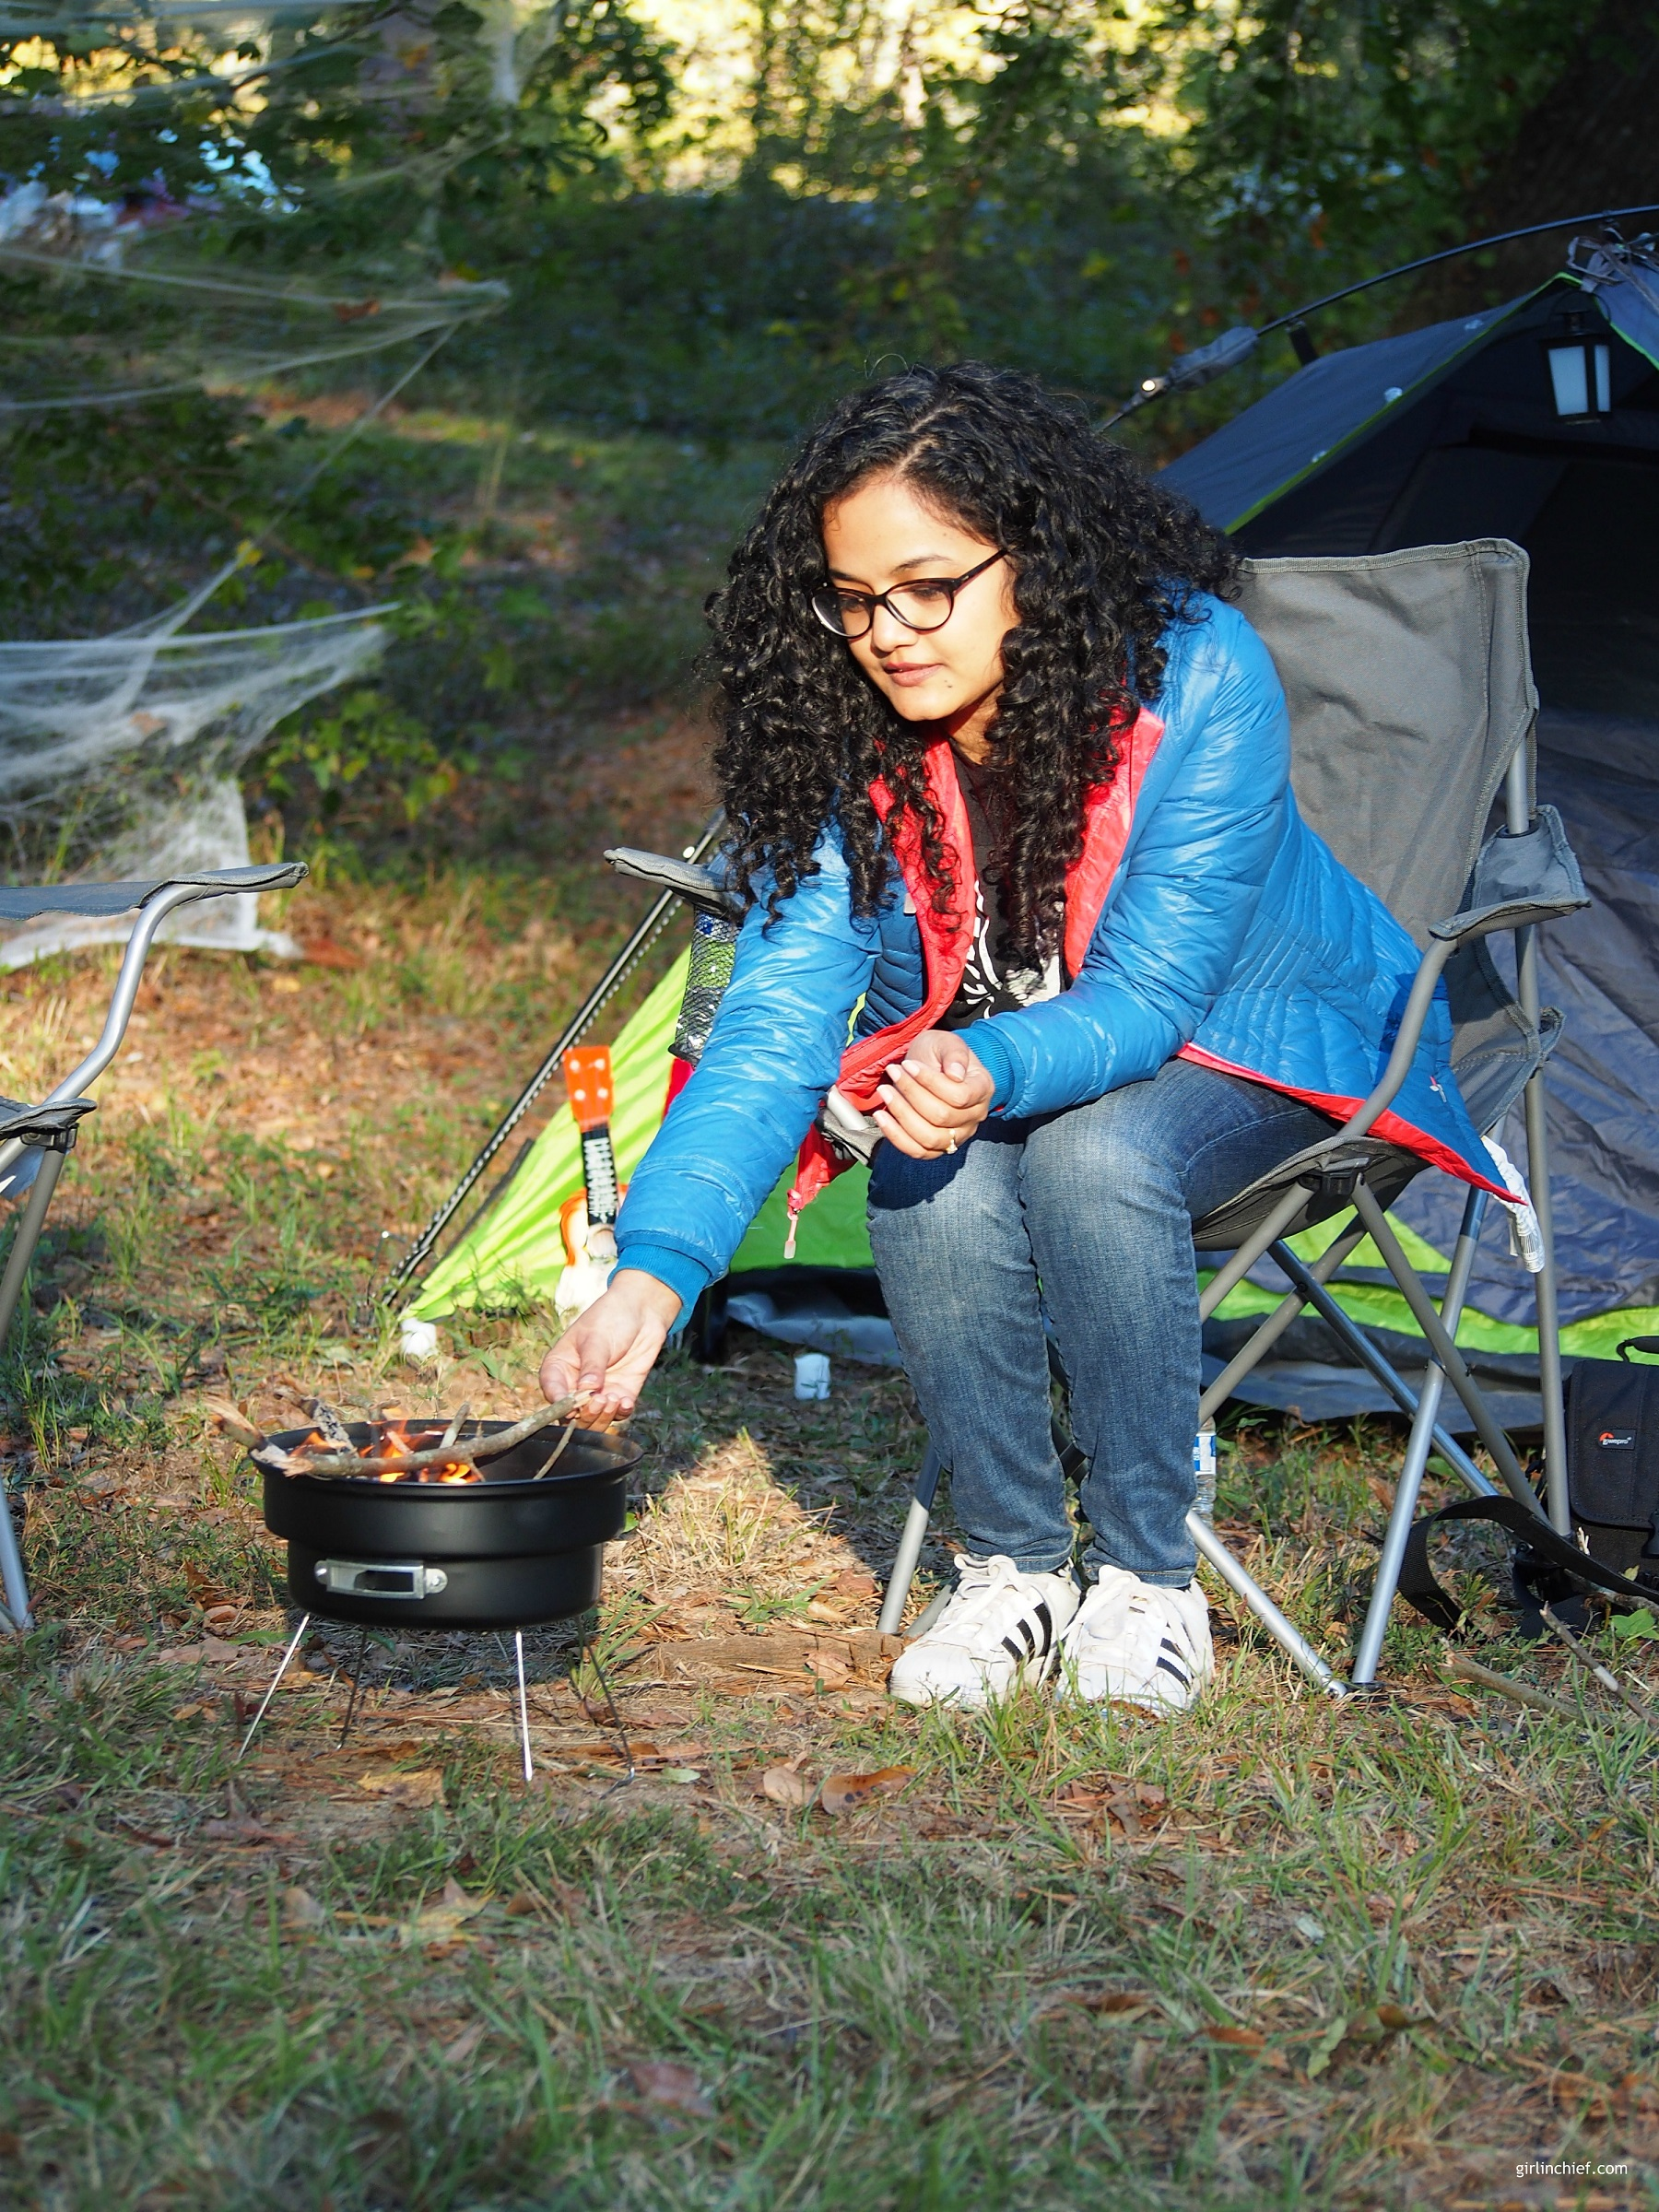 tent-camping-checklist-girlinchief-2